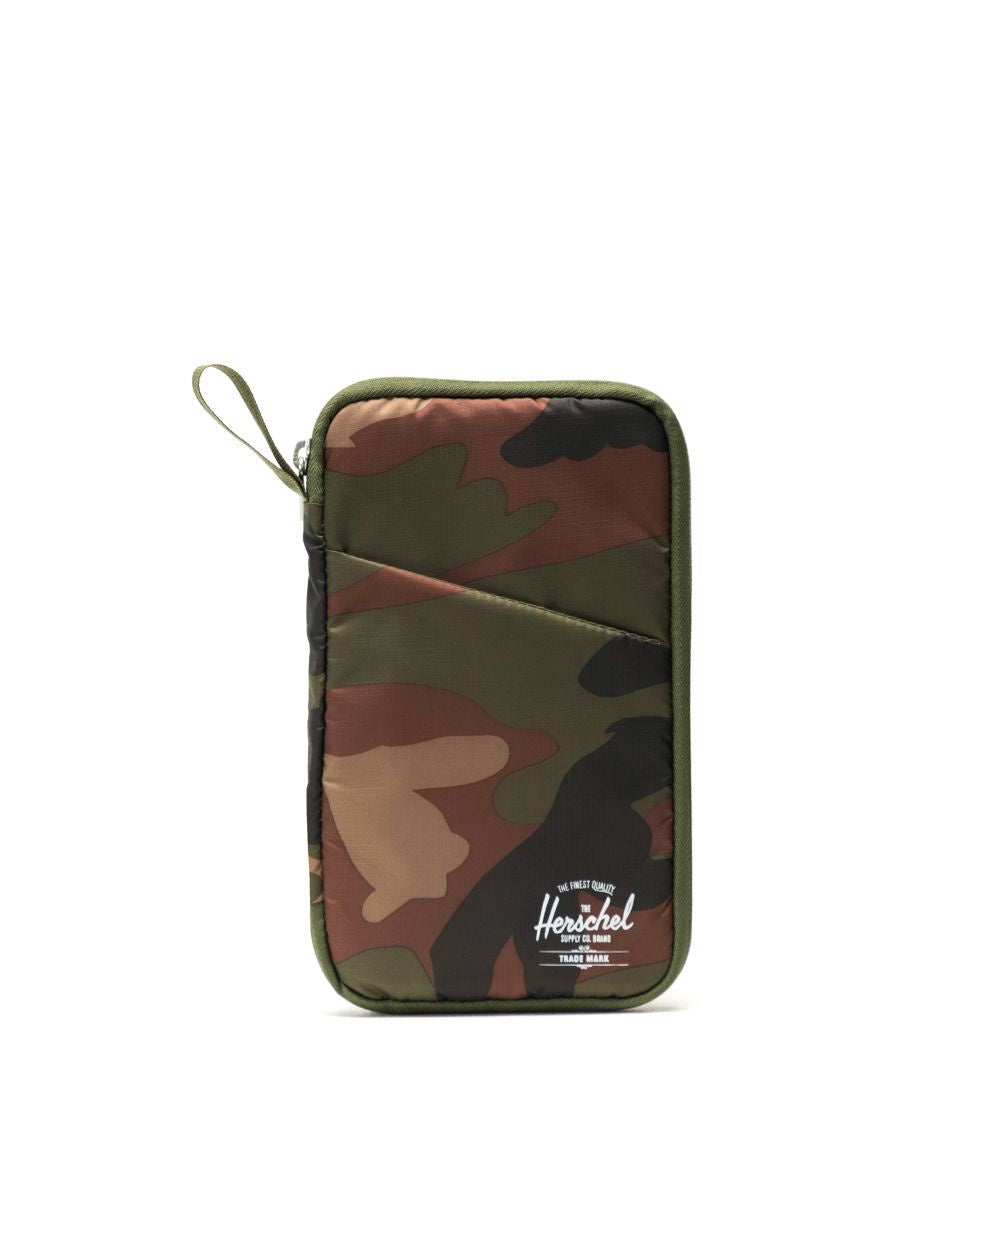 HERSCHEL - TRAVEL WALLET IN WOODLAND CAMO